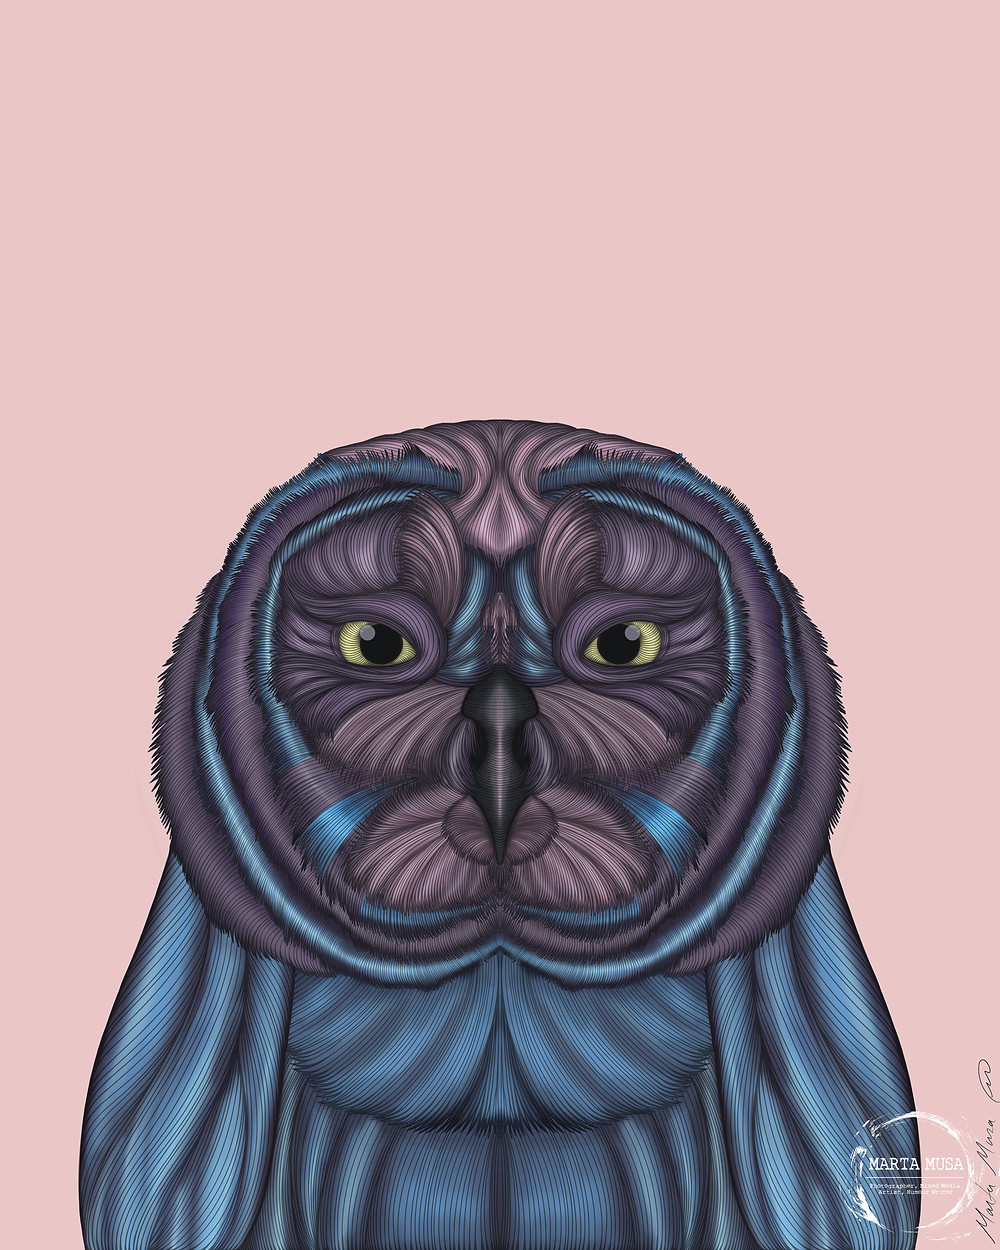 Contour line drawing of an owl.  His body is coloured in shades of blue and purple, his eyes are bright yellow.  The illustration is drawn on a light pink background.